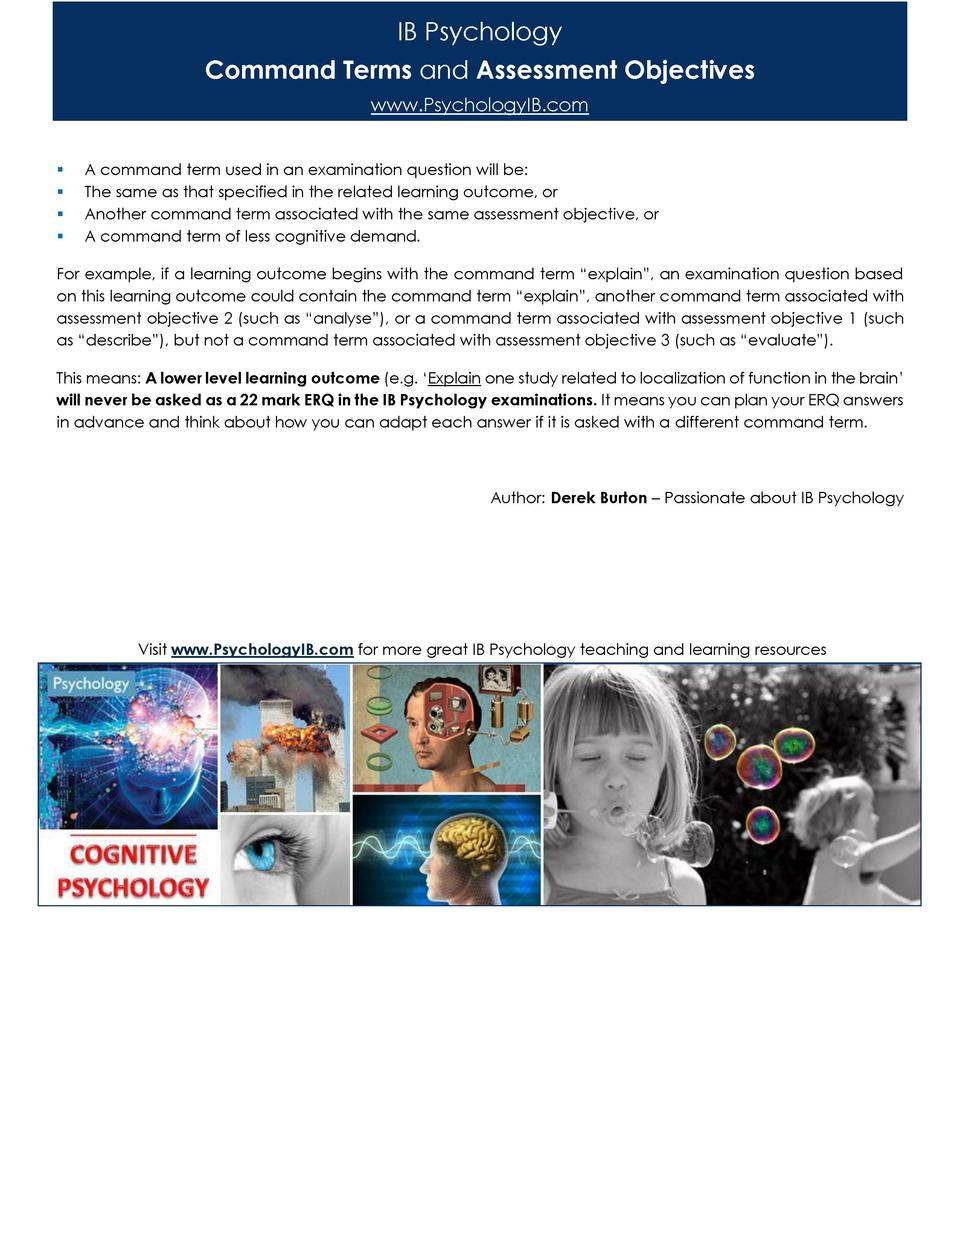 IB Psychology Command Terms and Assessment Objectives www.PsychologyIB.com                  A command term used in an exam...